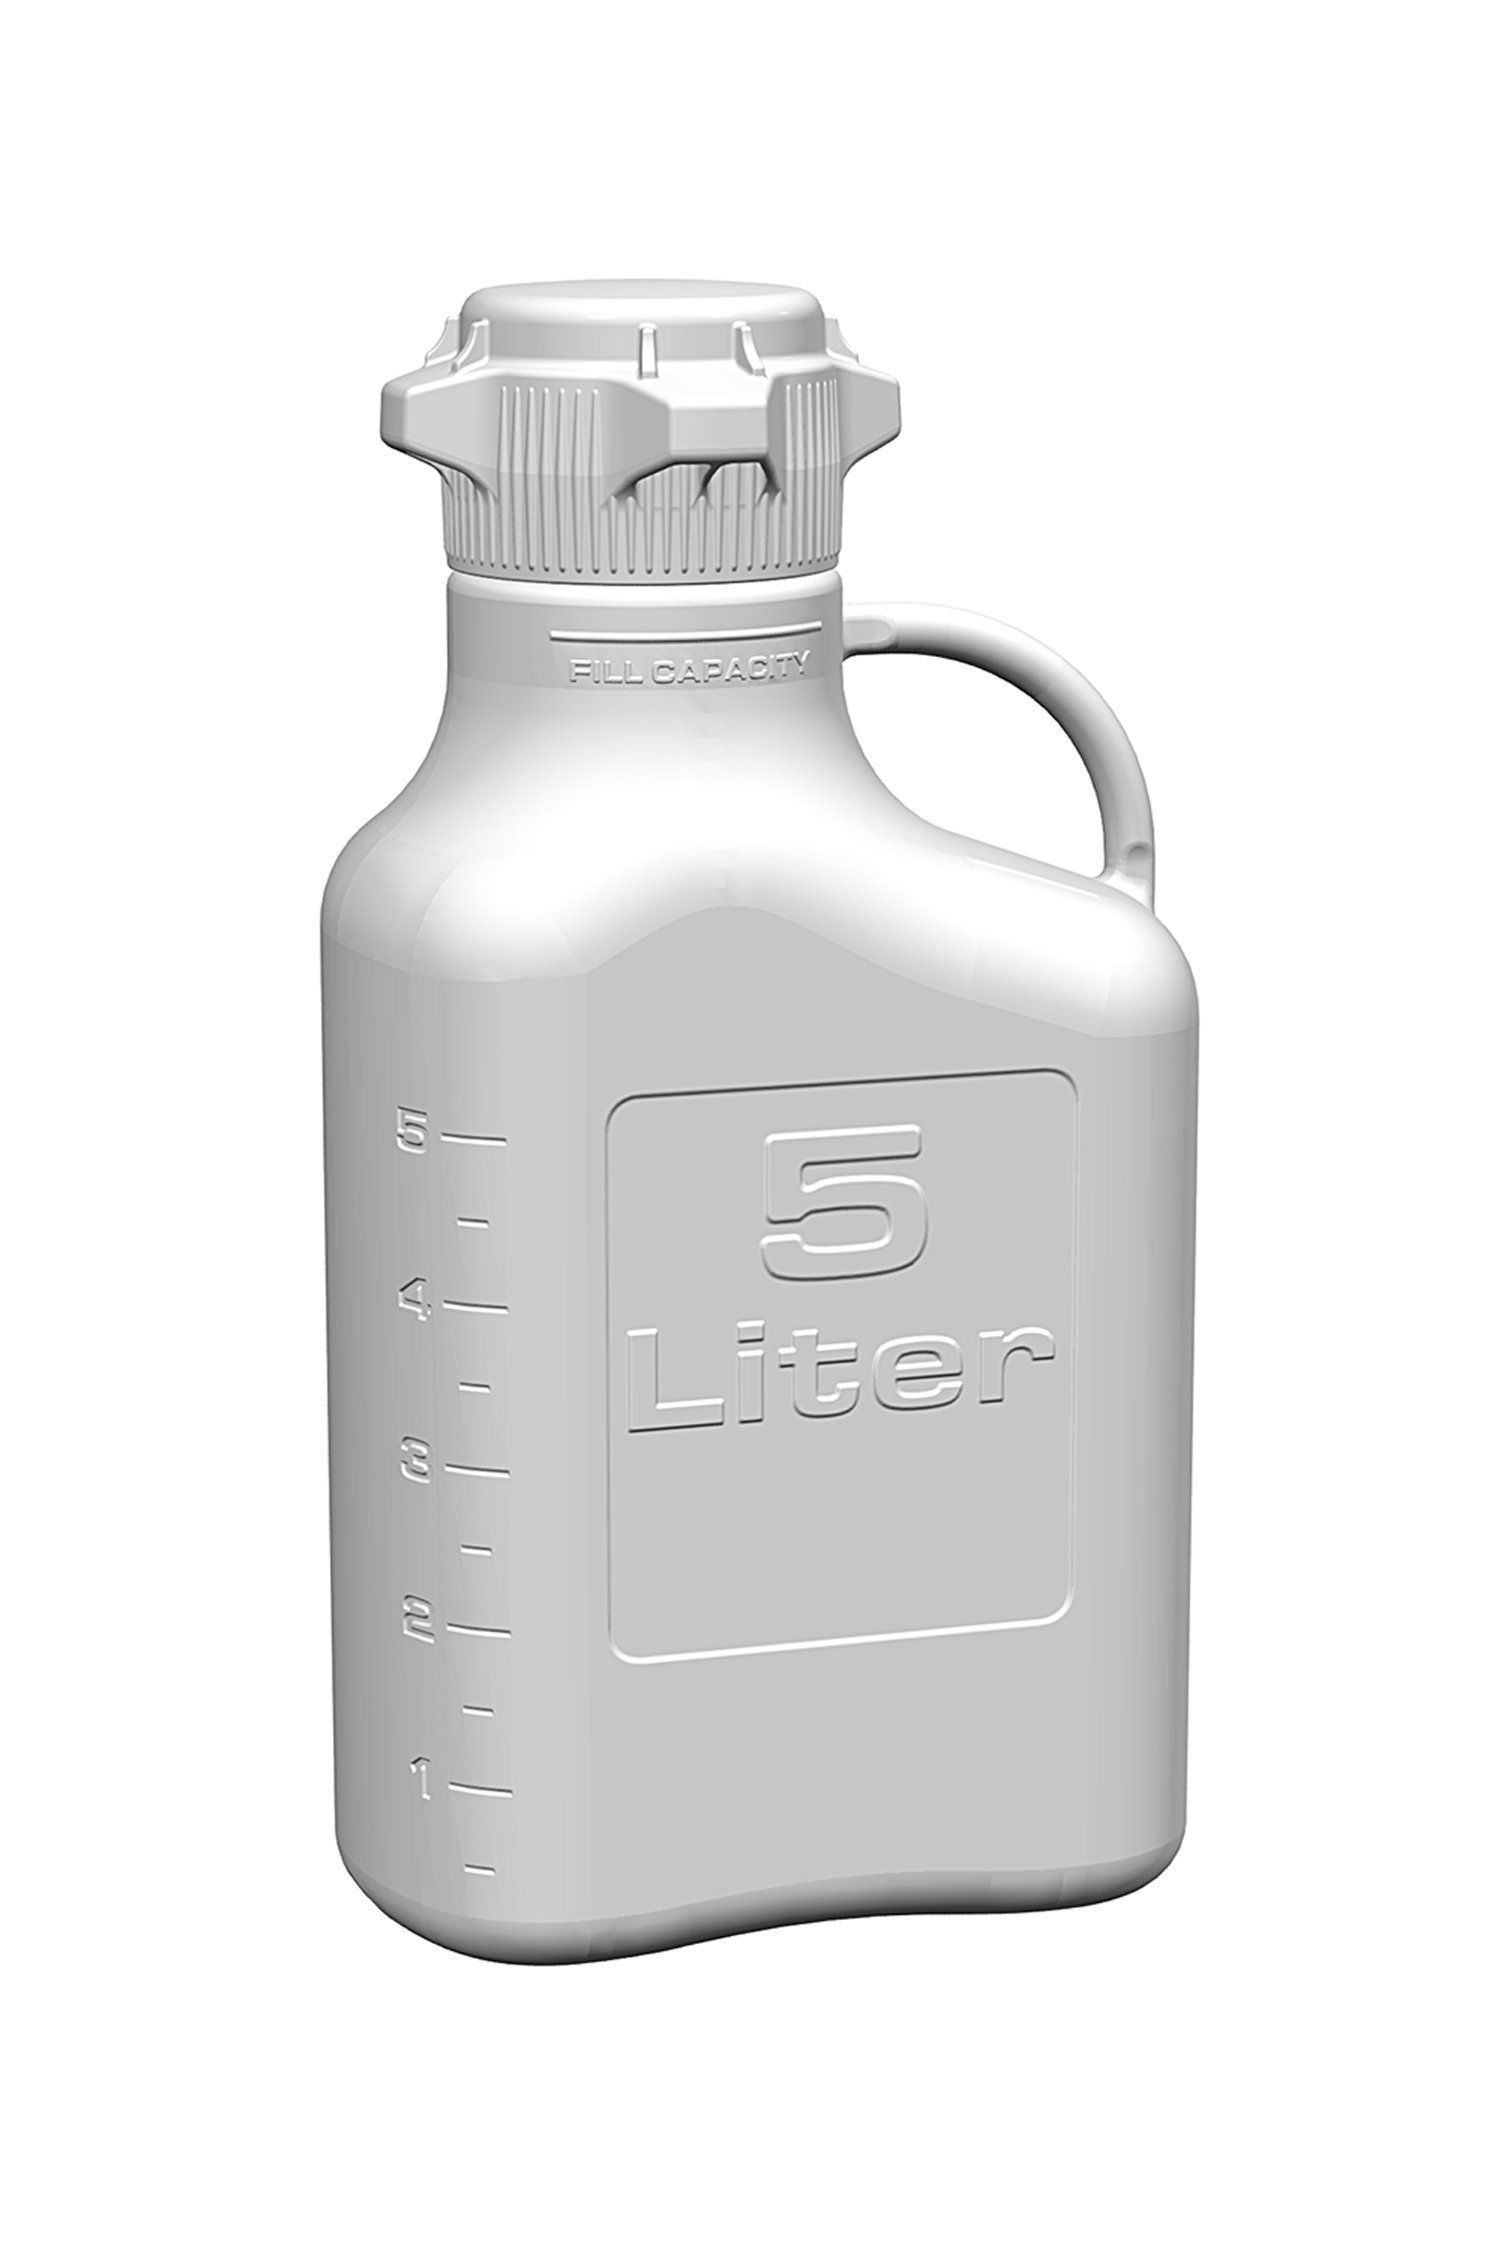 EZgrip 5L (1 Gal) Autoclavable Polypropylene (PP) Space Saving Carboy with 83mm (83B) VersaCap and 6.9L Max Capacity, Large Pinched Handles